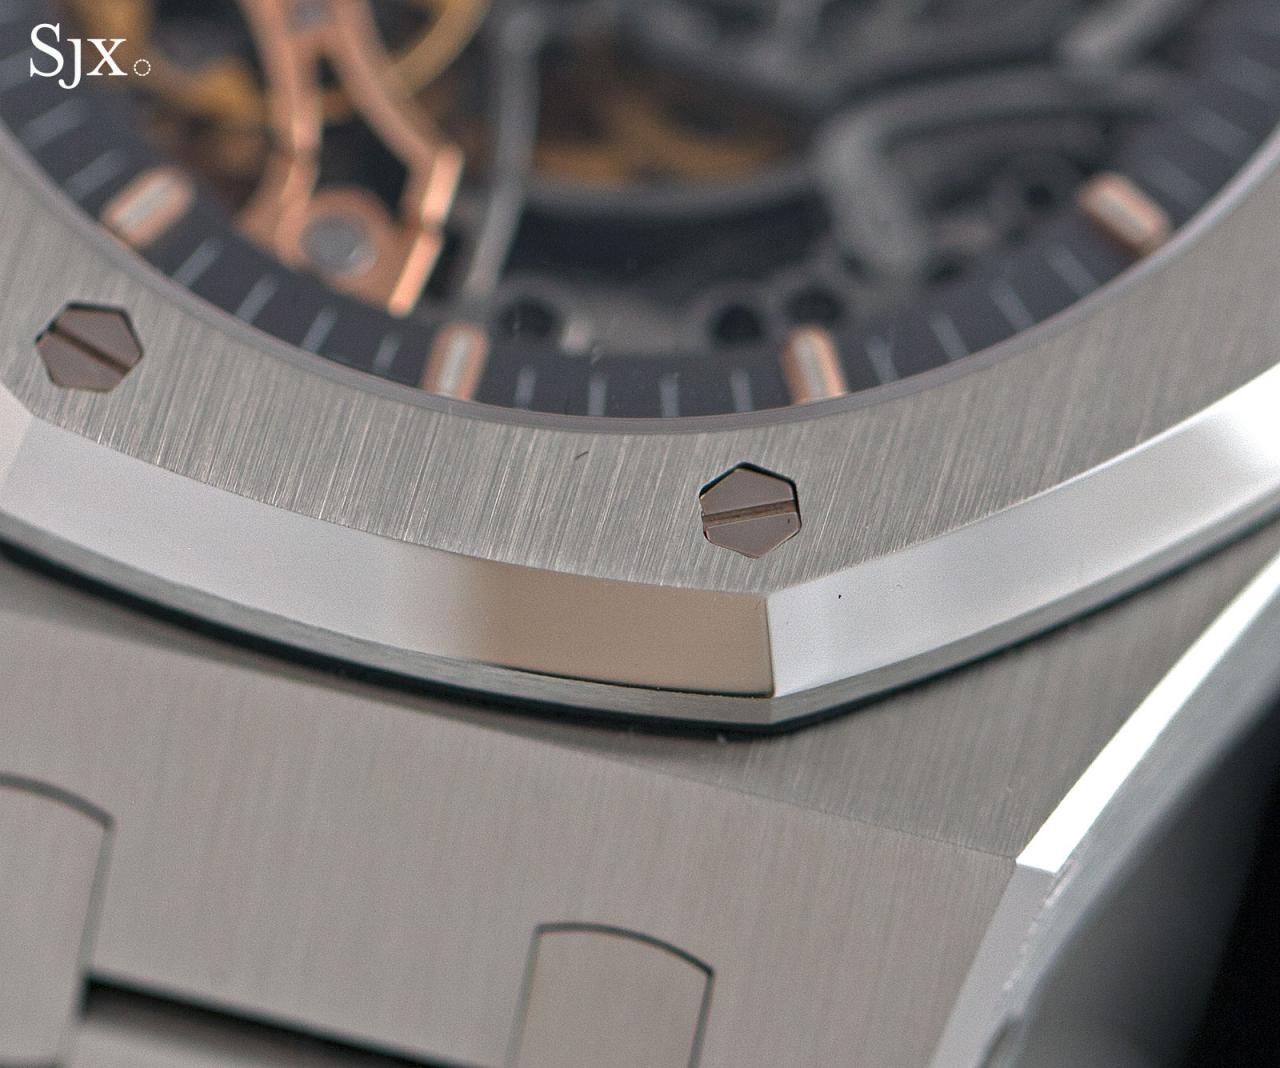 Audemars Piguet Royal Oak Double Balance Wheel Openworked Steel 5